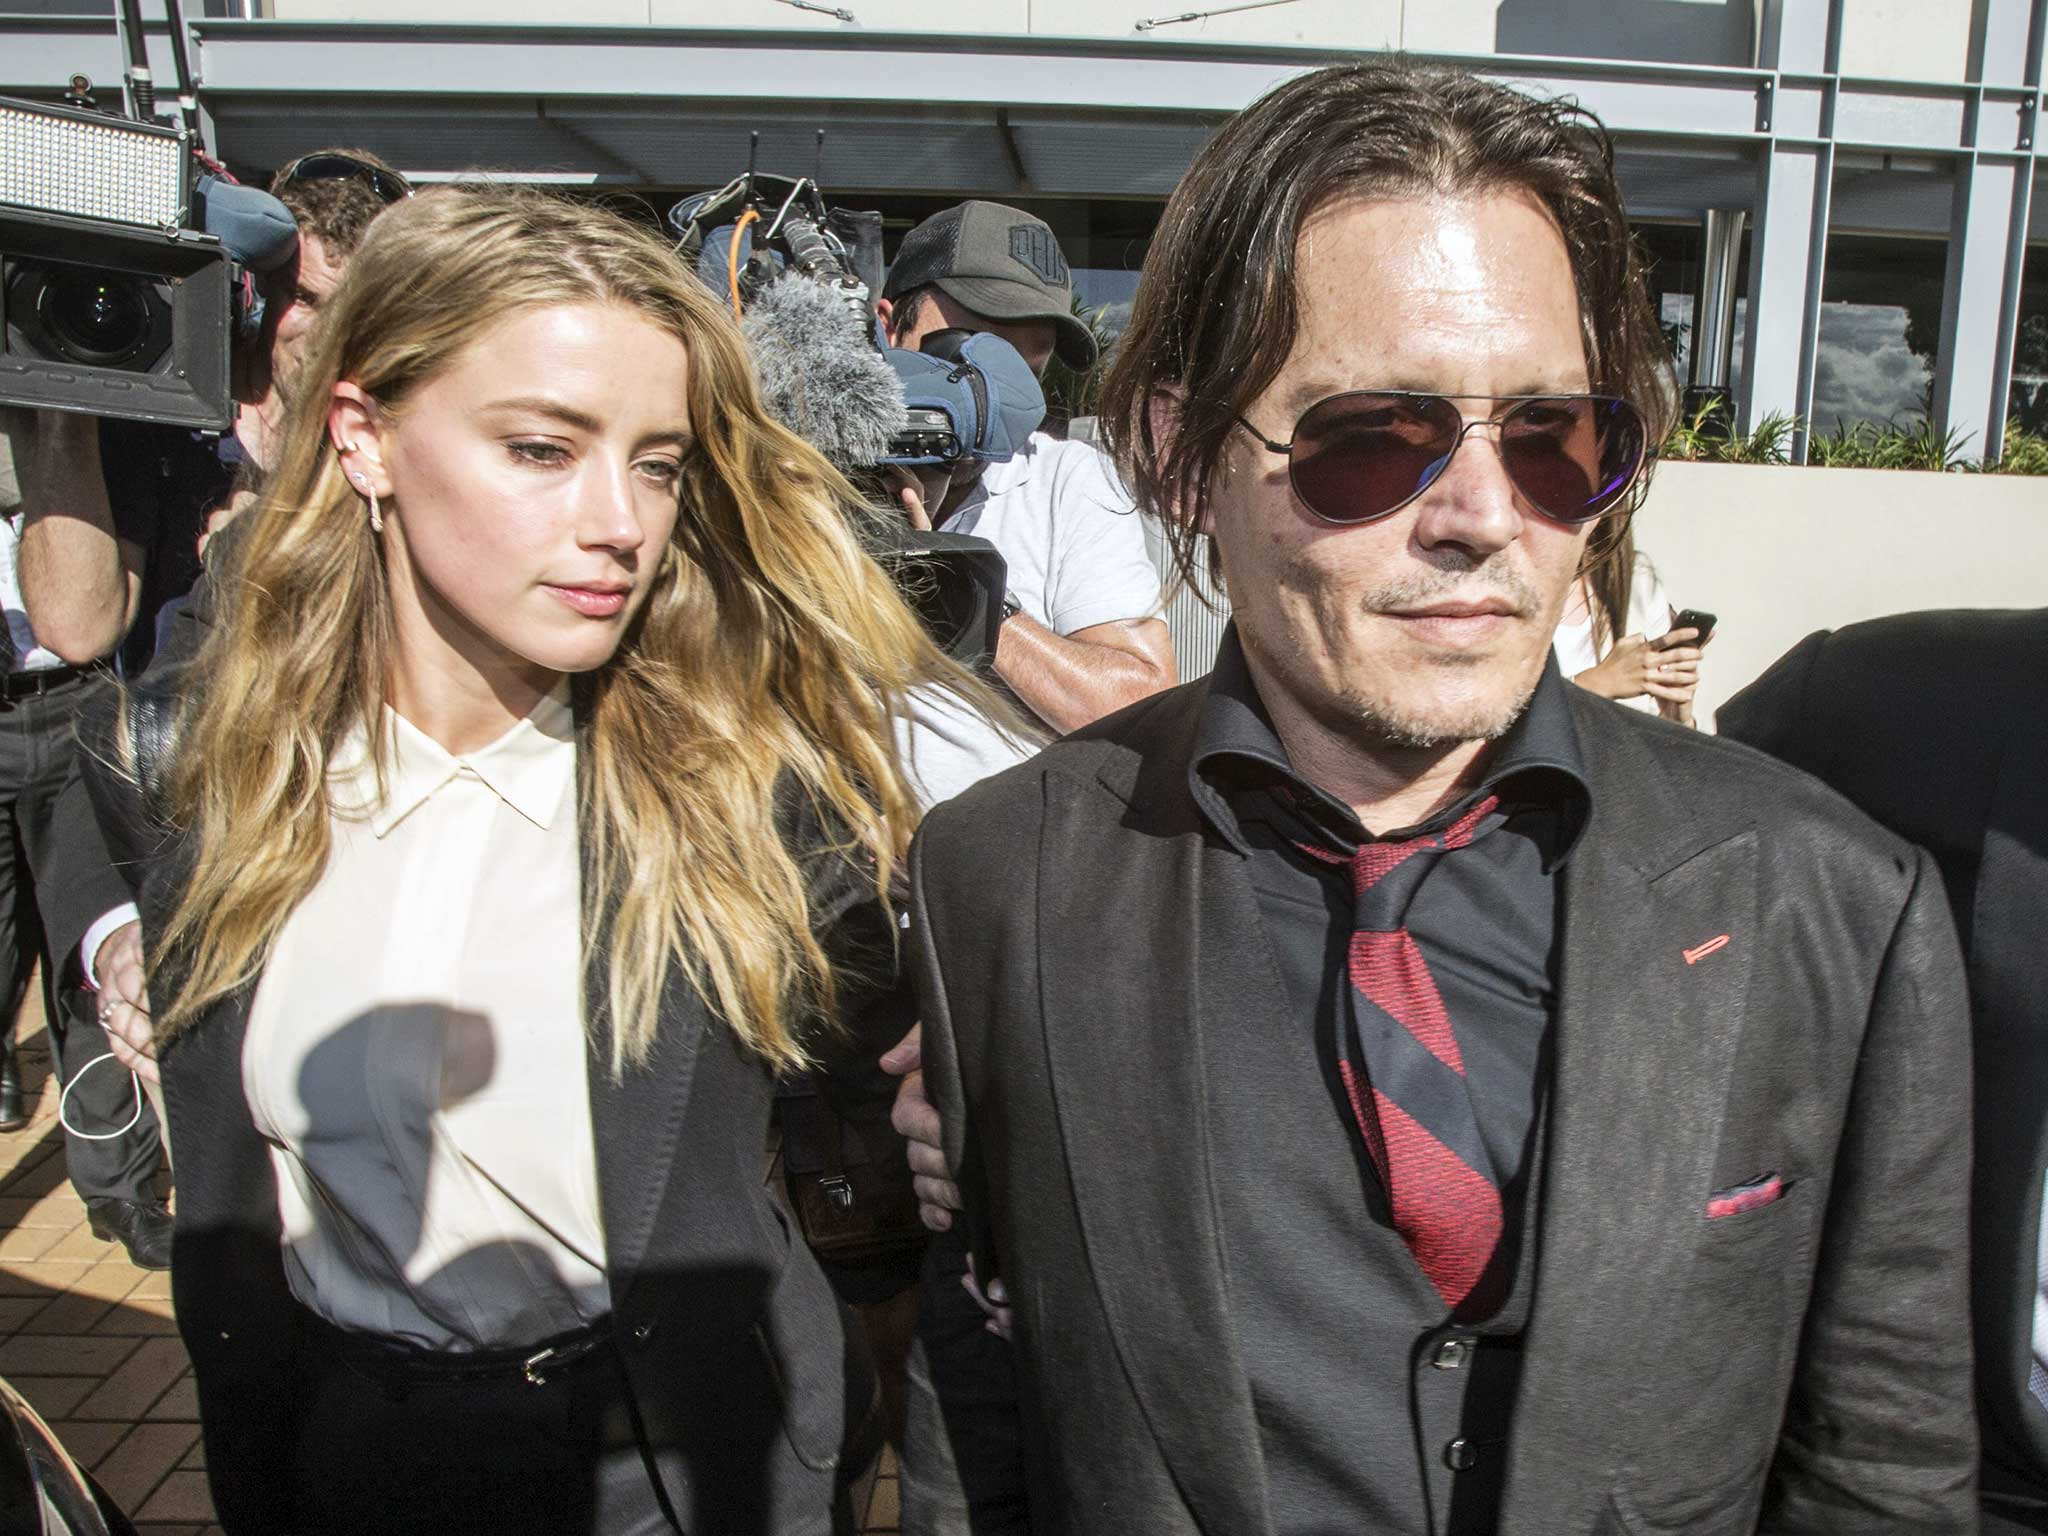 johnny depp absolutely still starring in sexual assault case johnny depp absolutely still starring in sexual assault case film despite amber heard violence accusations the independent